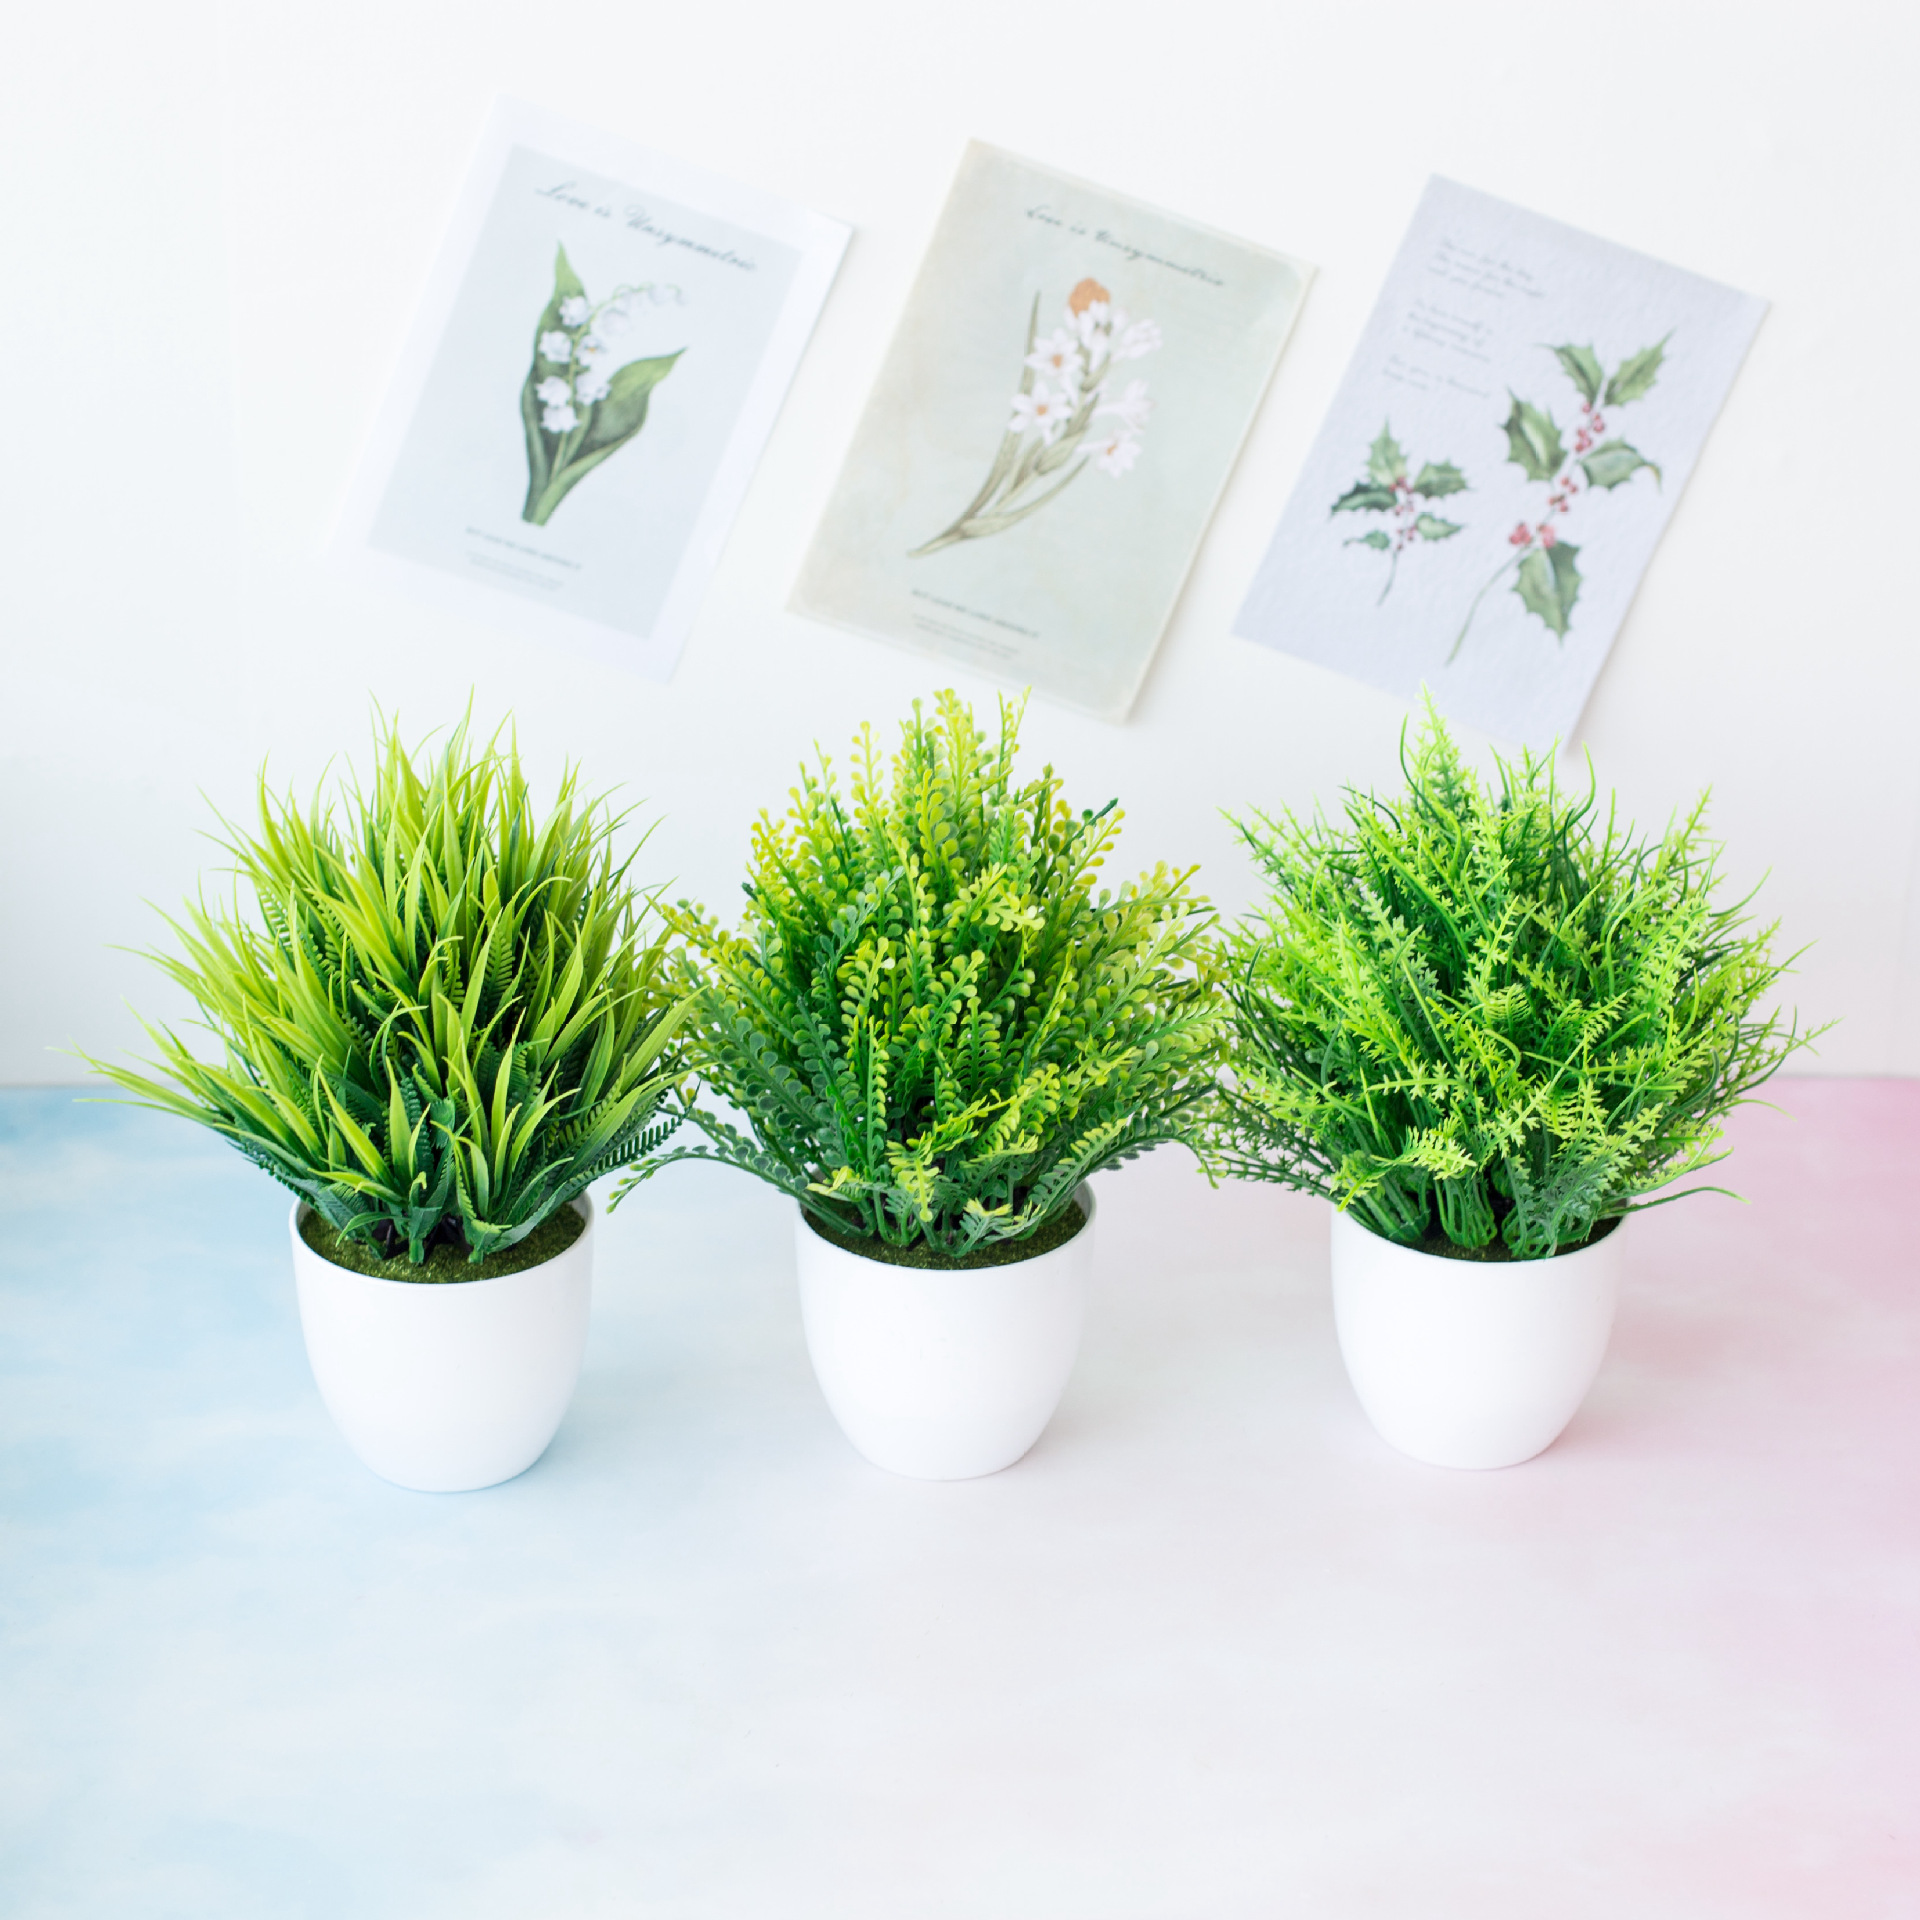 1pc Artificial Plants Green Bonsai Small Tree Pot Plants Fake Flower Potted Ornaments for Home Decoration Craft Plant Decorative 2